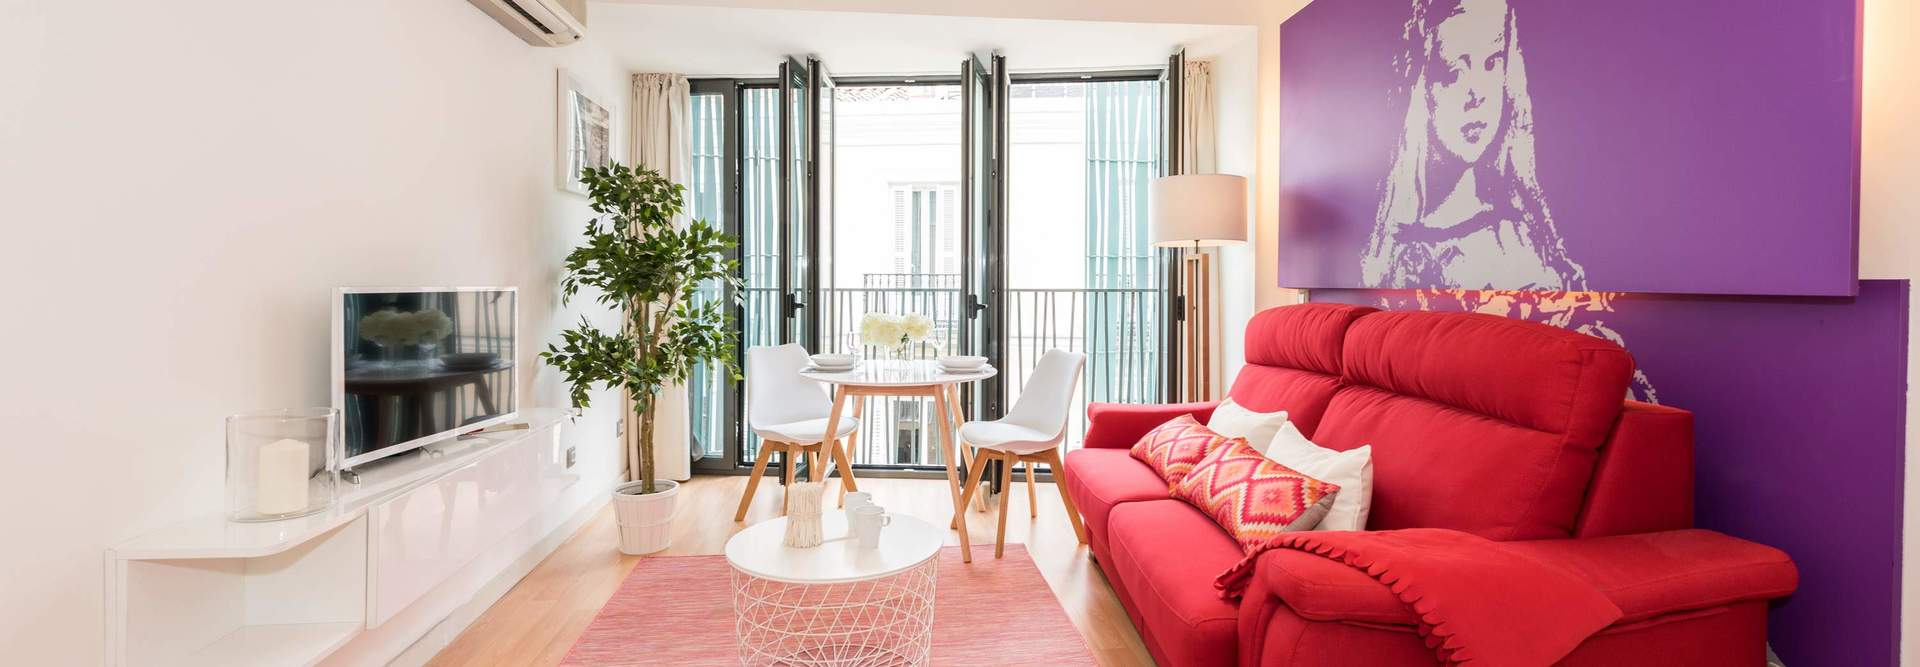 Home alquiler apartamento madrid centro mad4rent  15